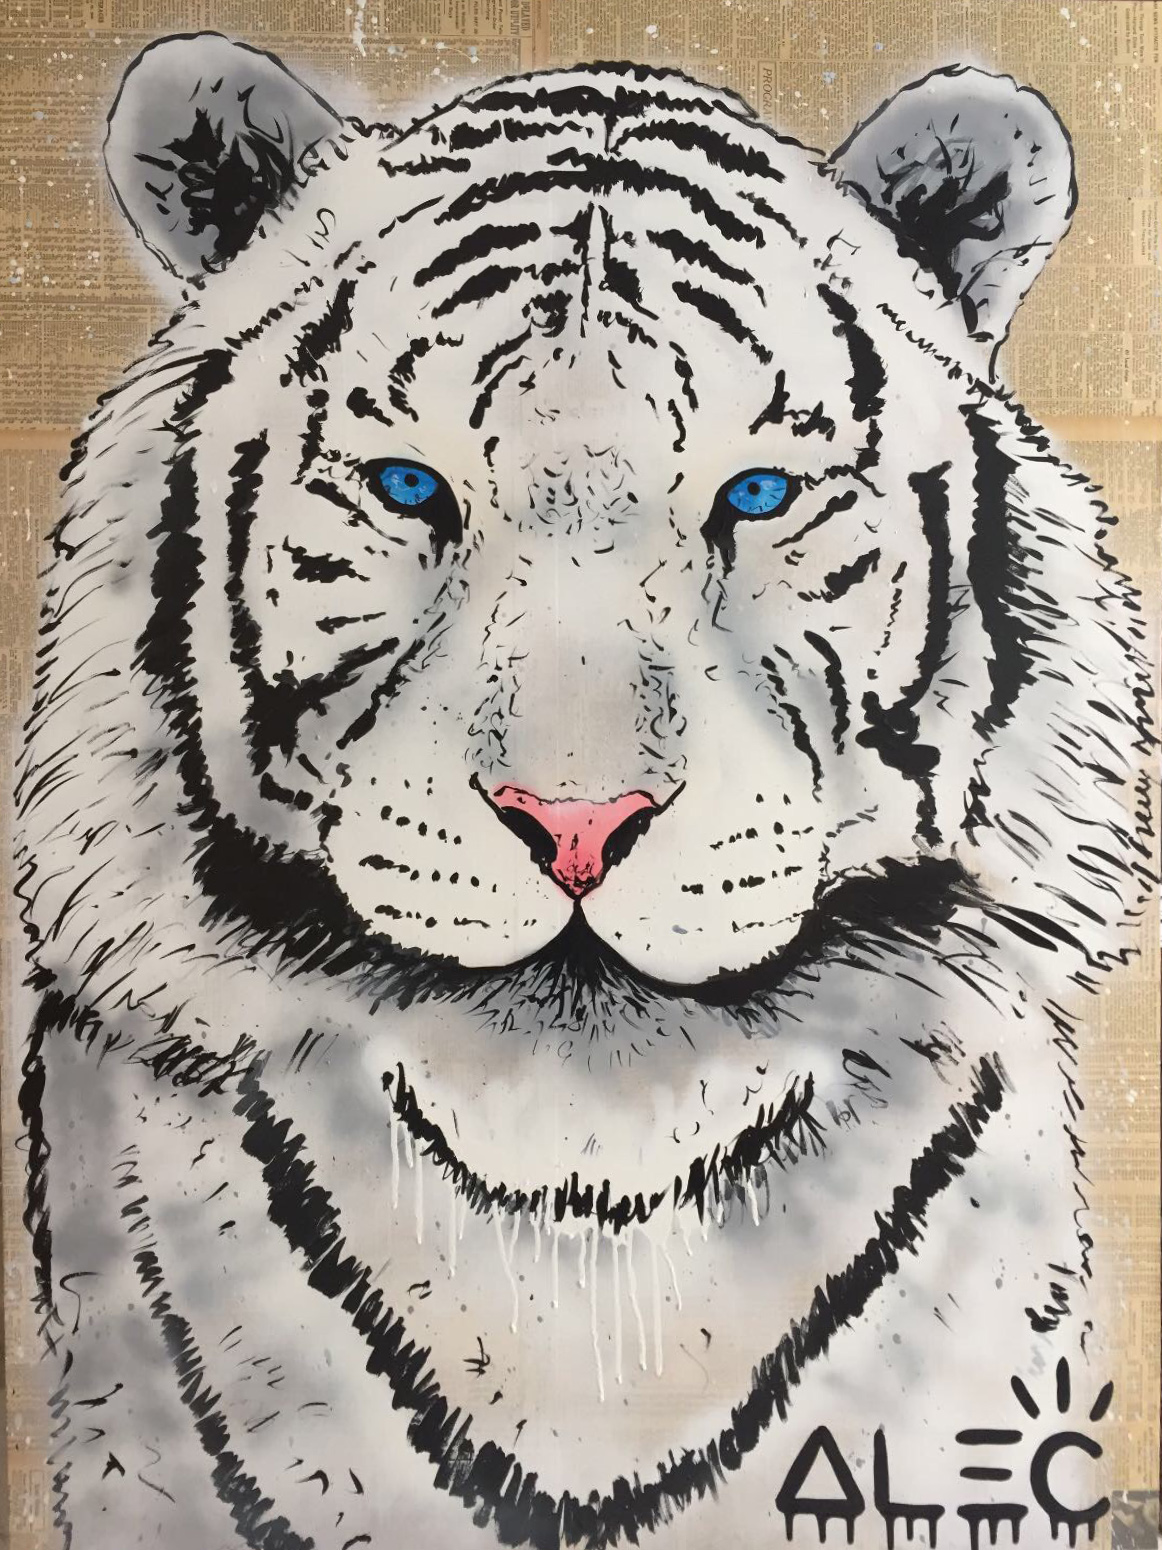 White Tiger by Alec Monopoly